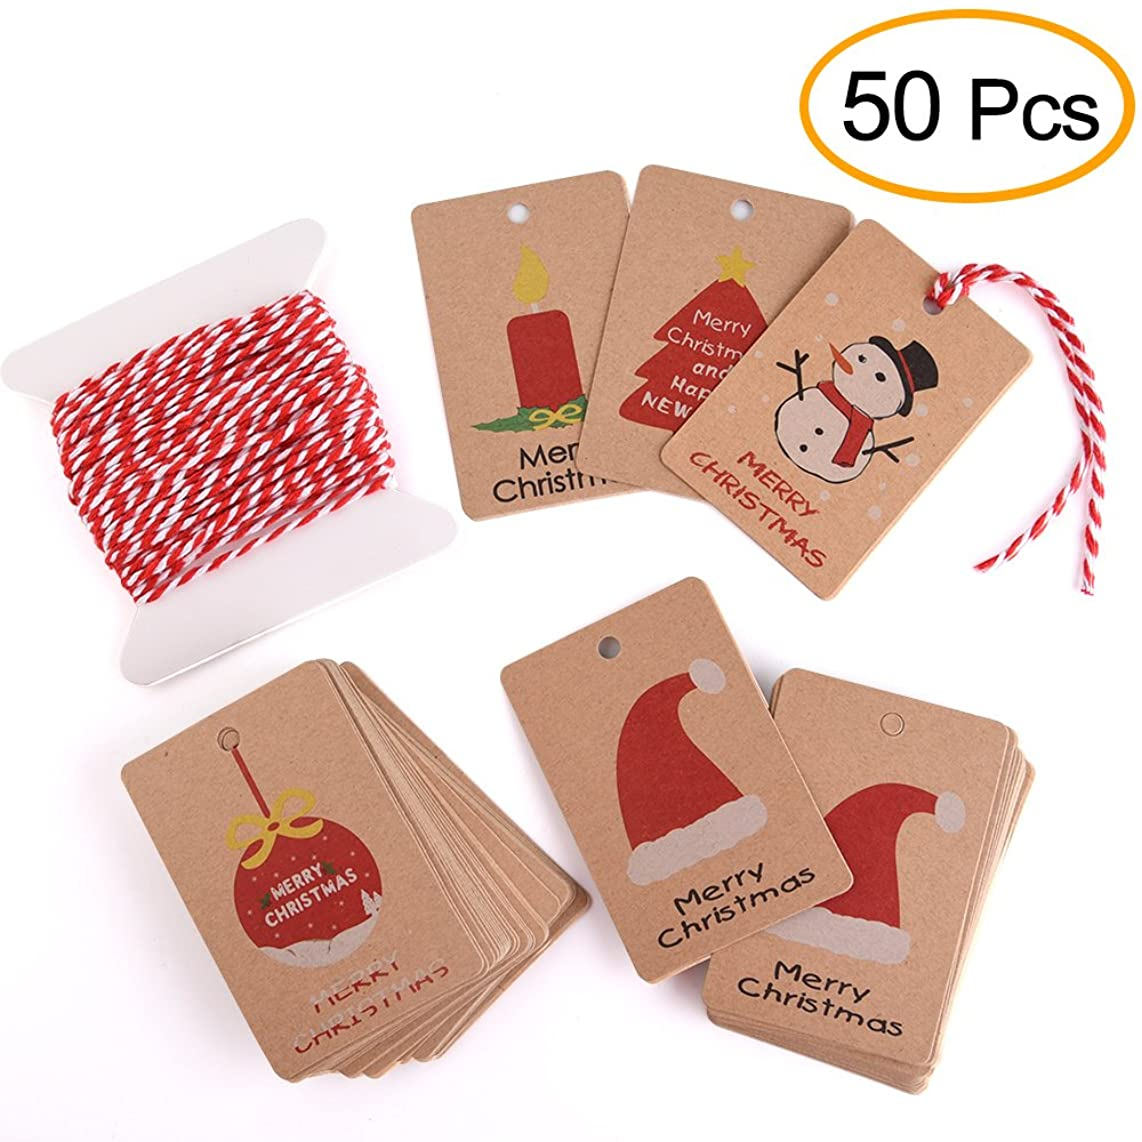 Kuuqa 50 Pieces Kraft Paper Christmas Gift Tags for Christmas Gift Wrapping Label with Hanging Rope, 5 Different Design